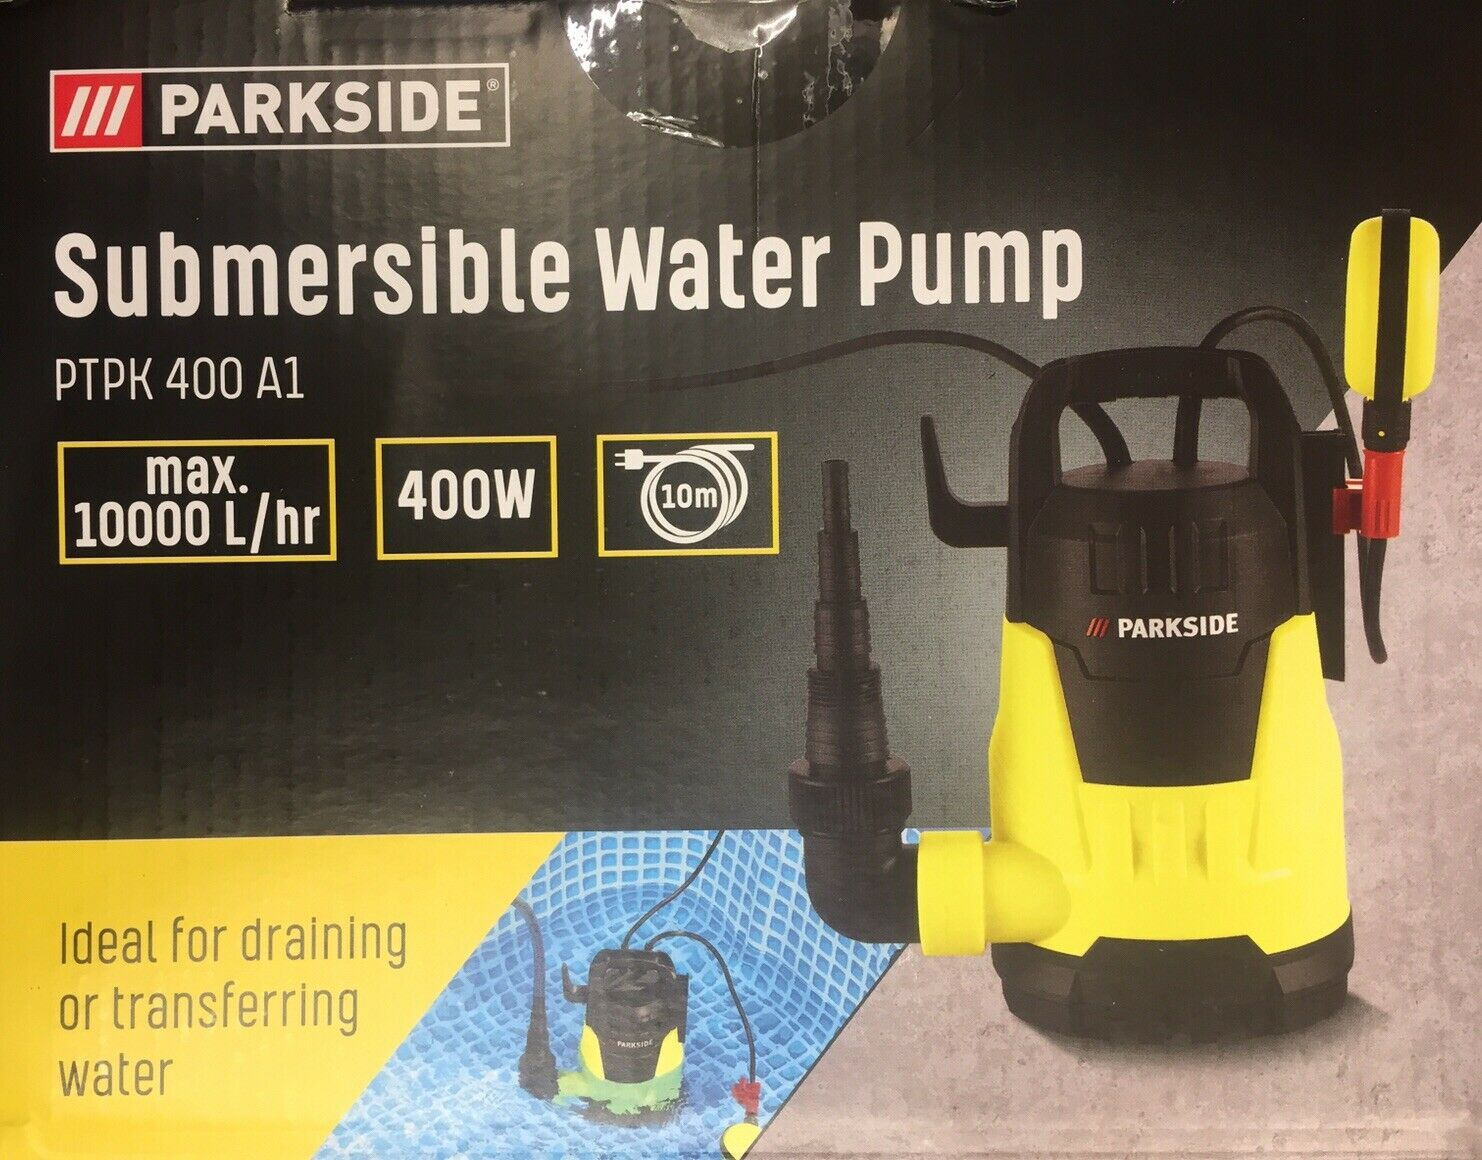 Parkside Sumbersidle Water Pump 400w 10000L /hr Made In Germany New 2020